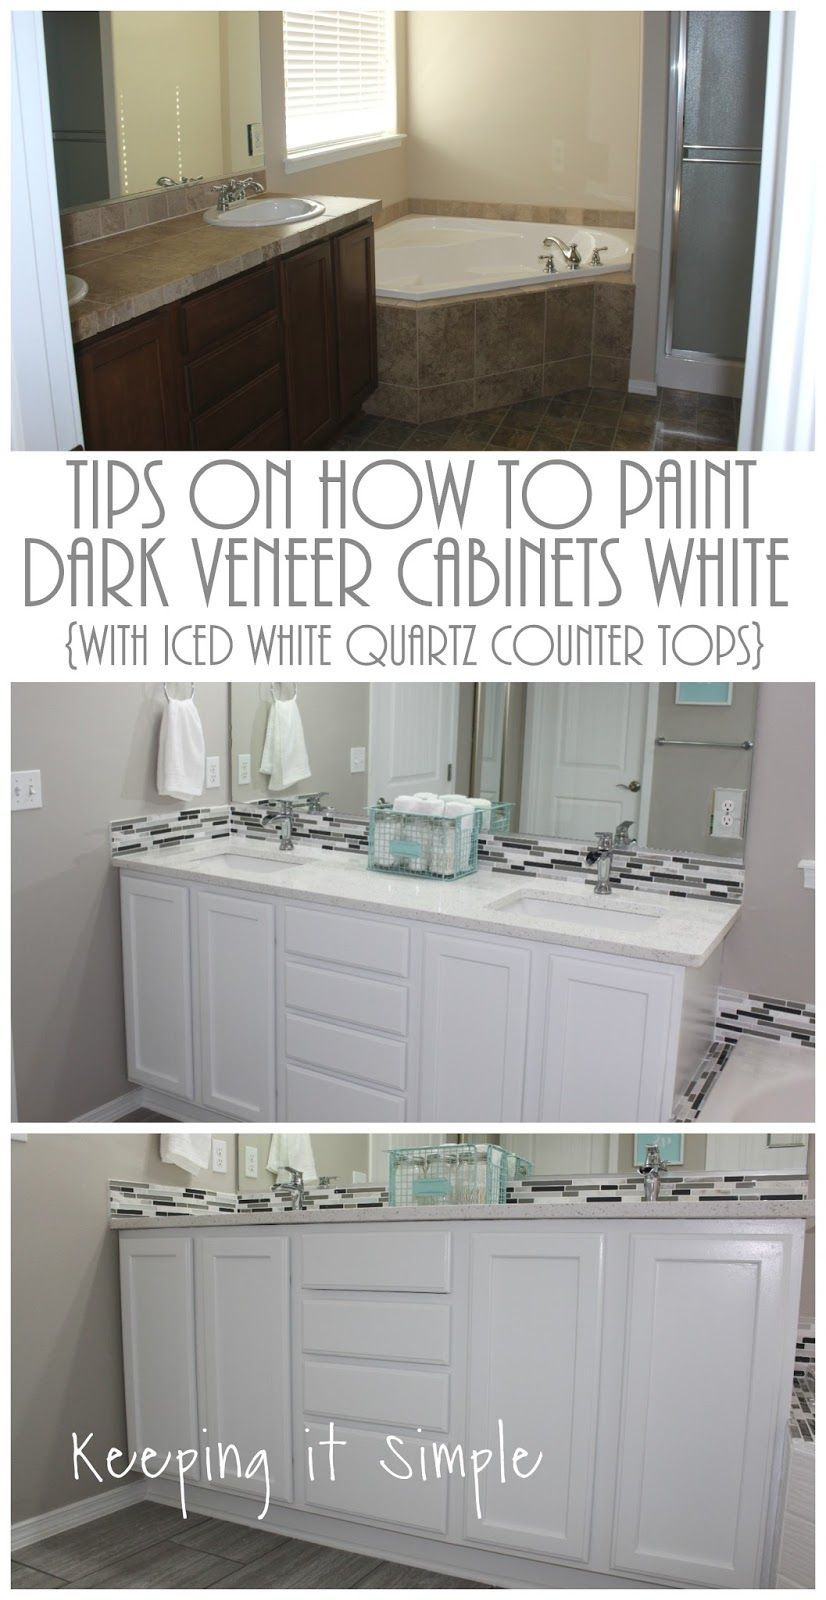 Tips On How To Paint Dark Veneer Cabinets White With Pro Classic Paint And Iced White Quartz Counter White Bathroom Cabinets Countertops Painting Wood Cabinets